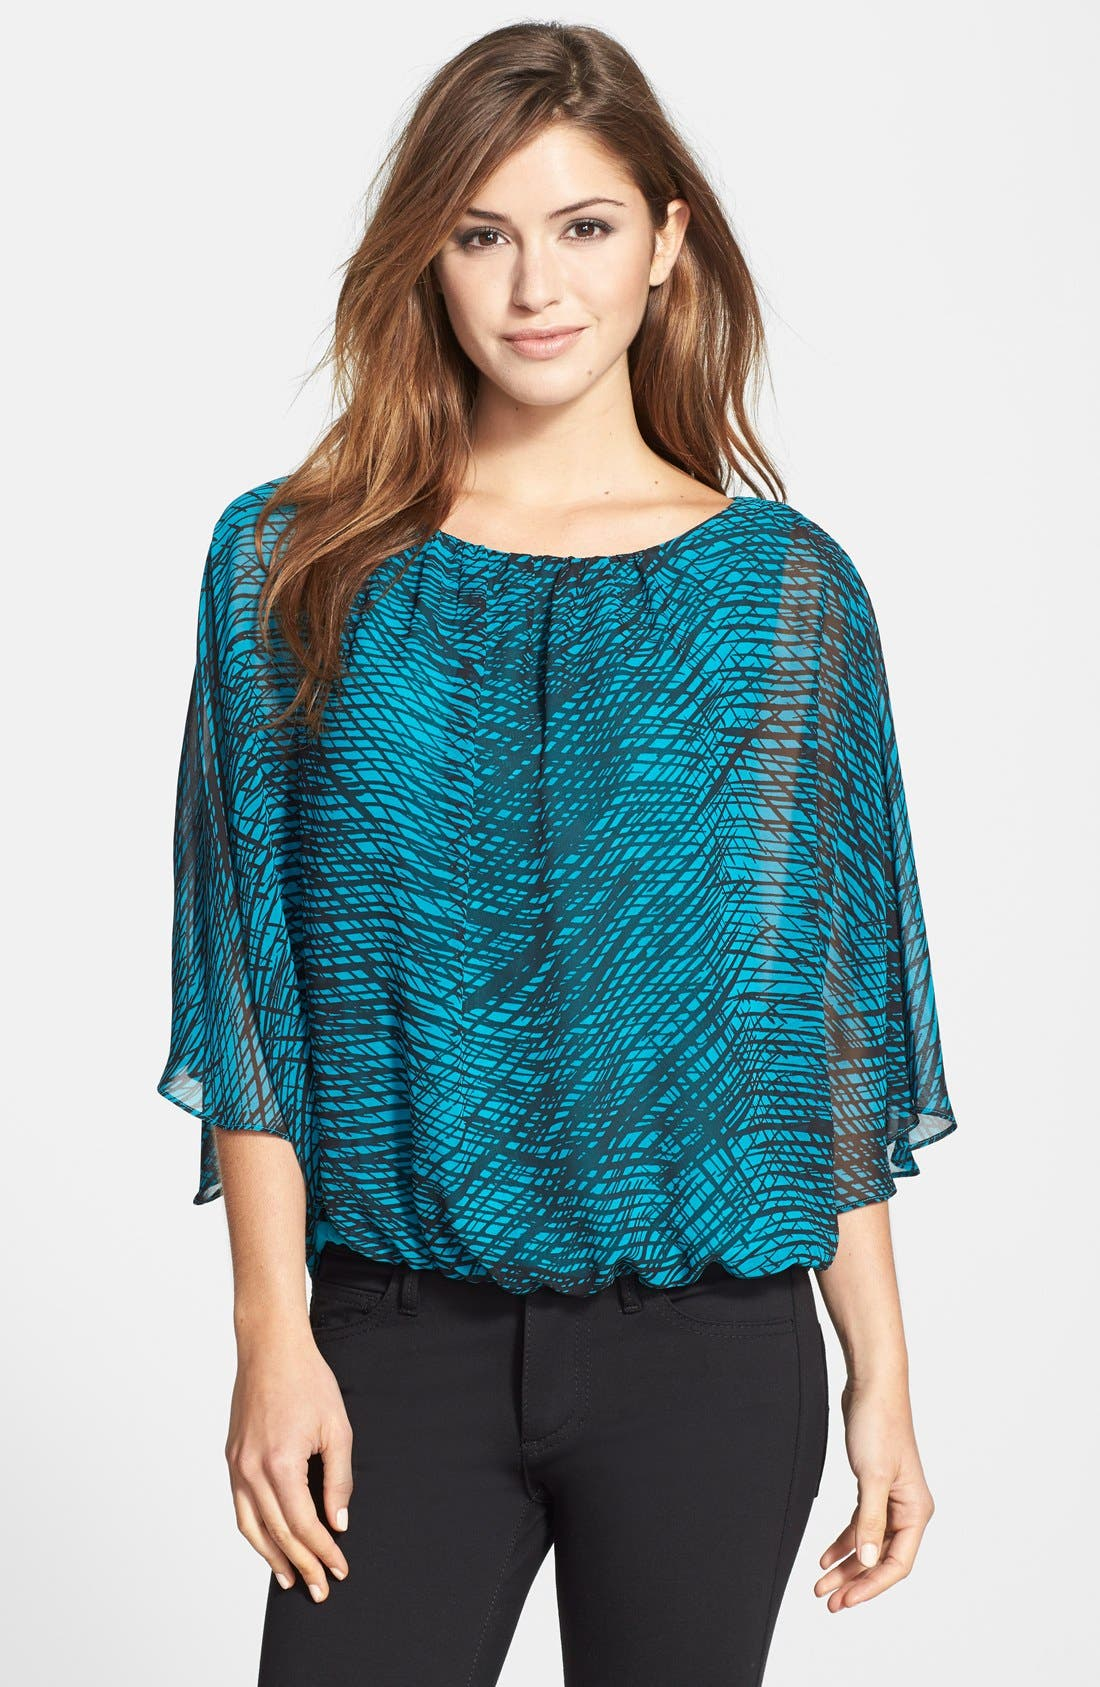 Main Image - Vince Camuto 'Twilight Thatches' Print Batwing Blouse